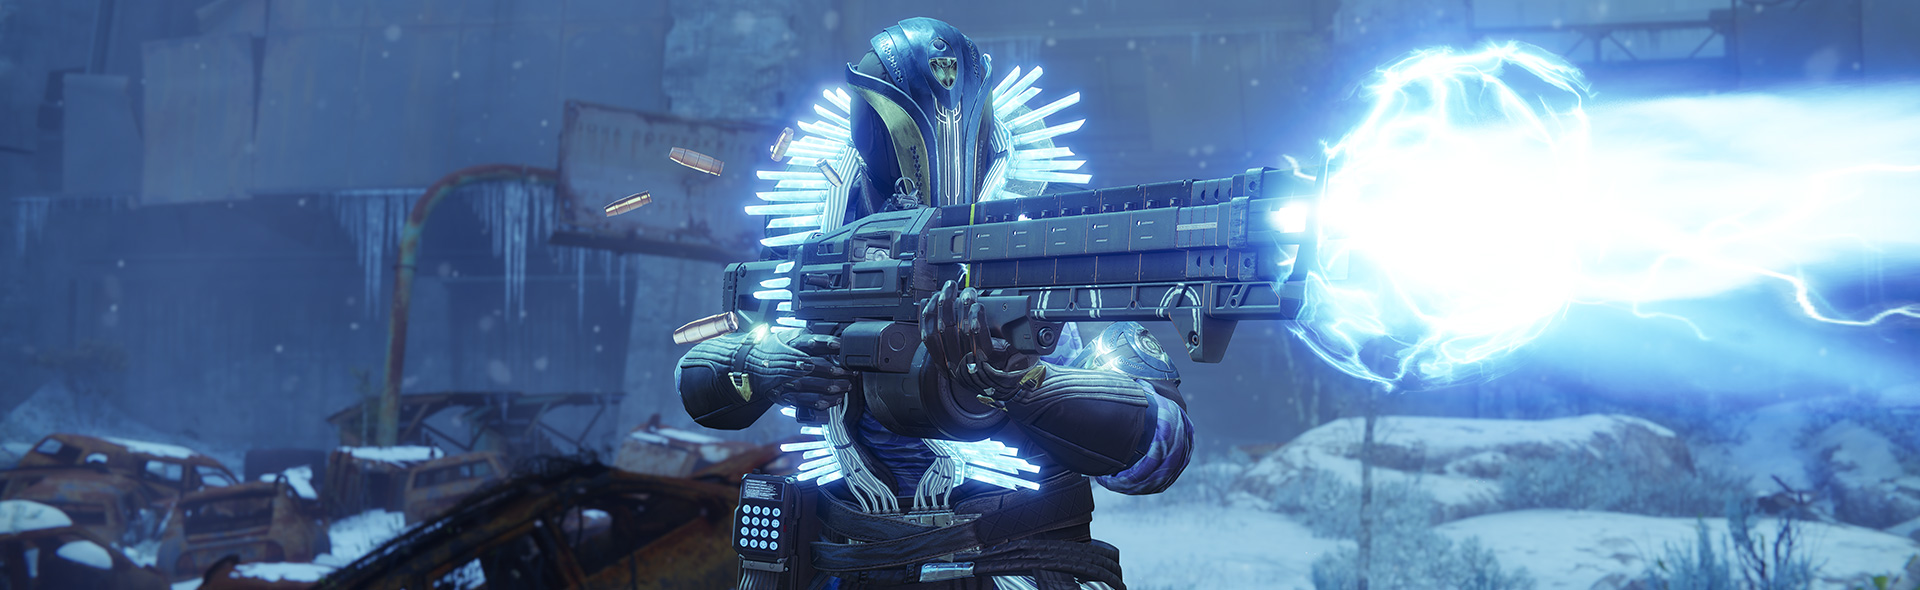 This Week At Bungie – 11/15/2018 > News | Bungie net